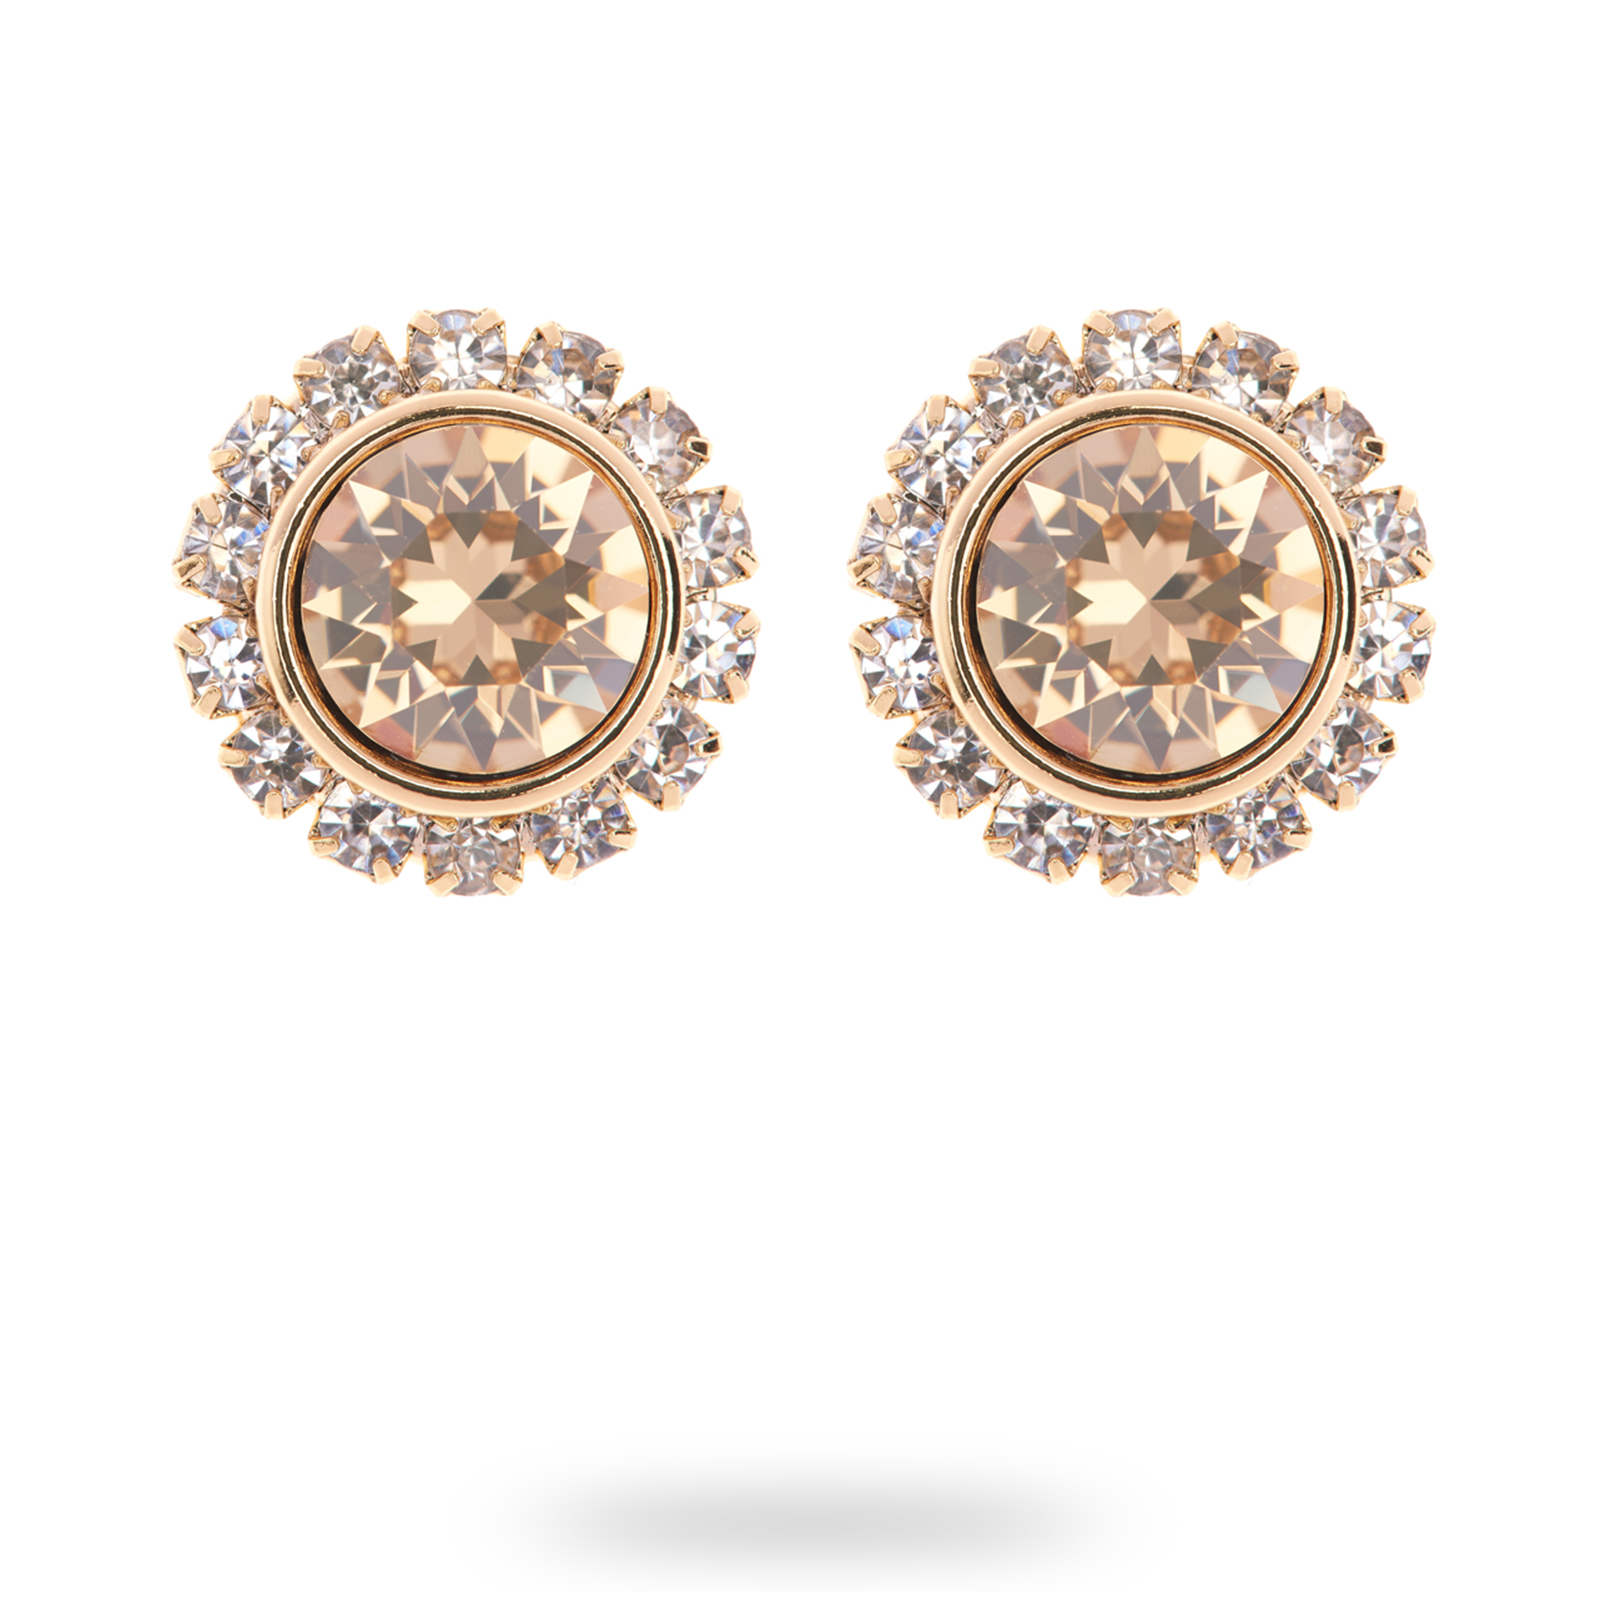 e5516ca1d1cf Ted Baker PVD Gold Plated Sully Crystal Daisy Stud Earrings ...